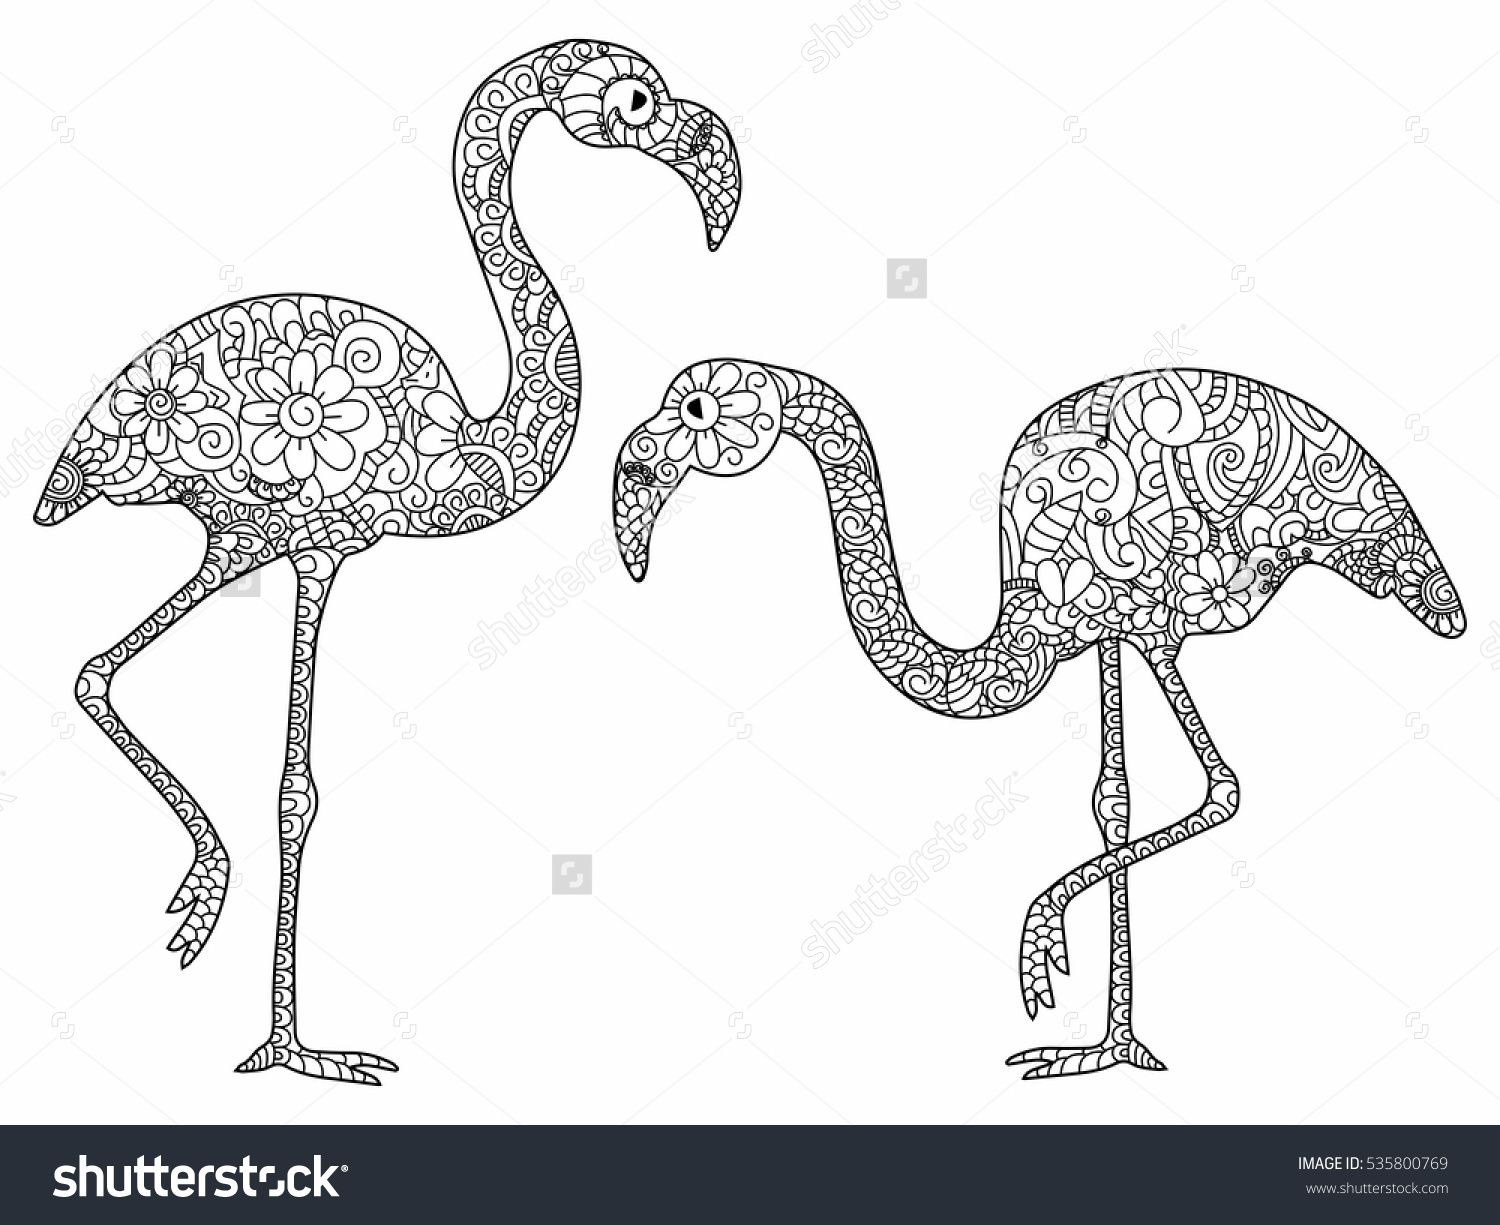 Coloring sheets for adults flamingo - Stock Vector Two Flamingos Book For Adults Vector Adult Coloring Pages